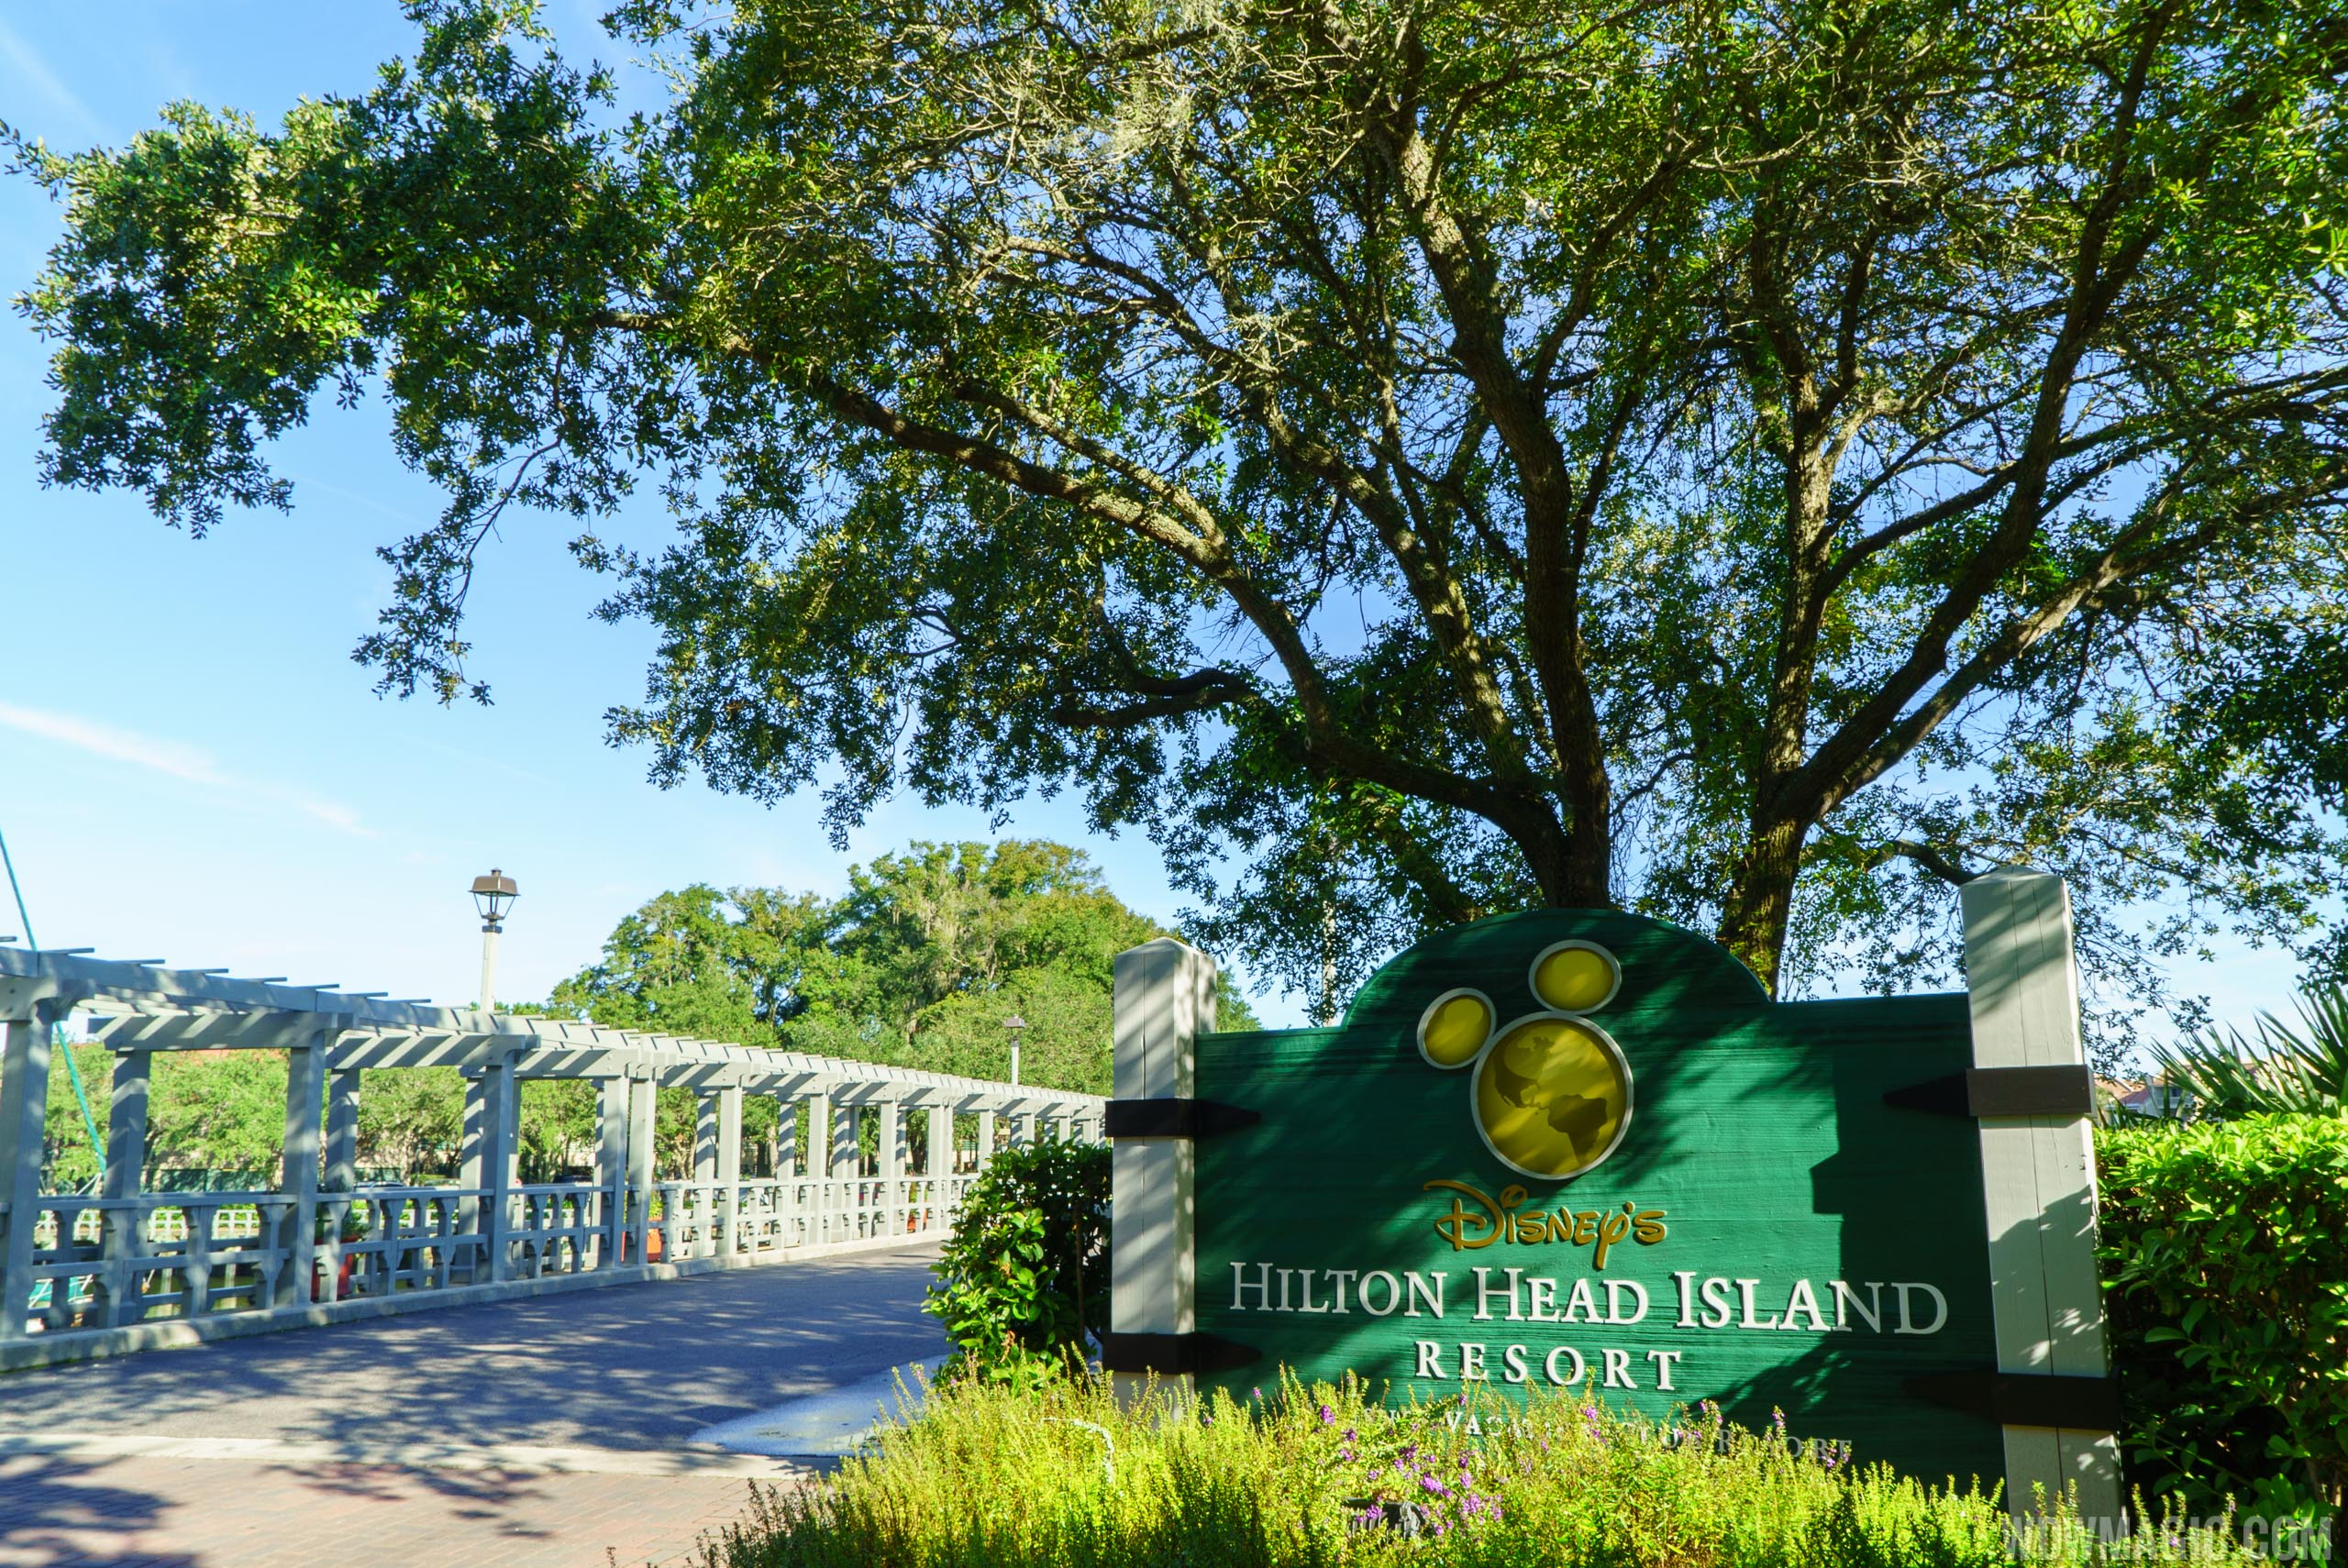 Disney's Hilton Head Island Resort - Buildings, Grounds and Pool